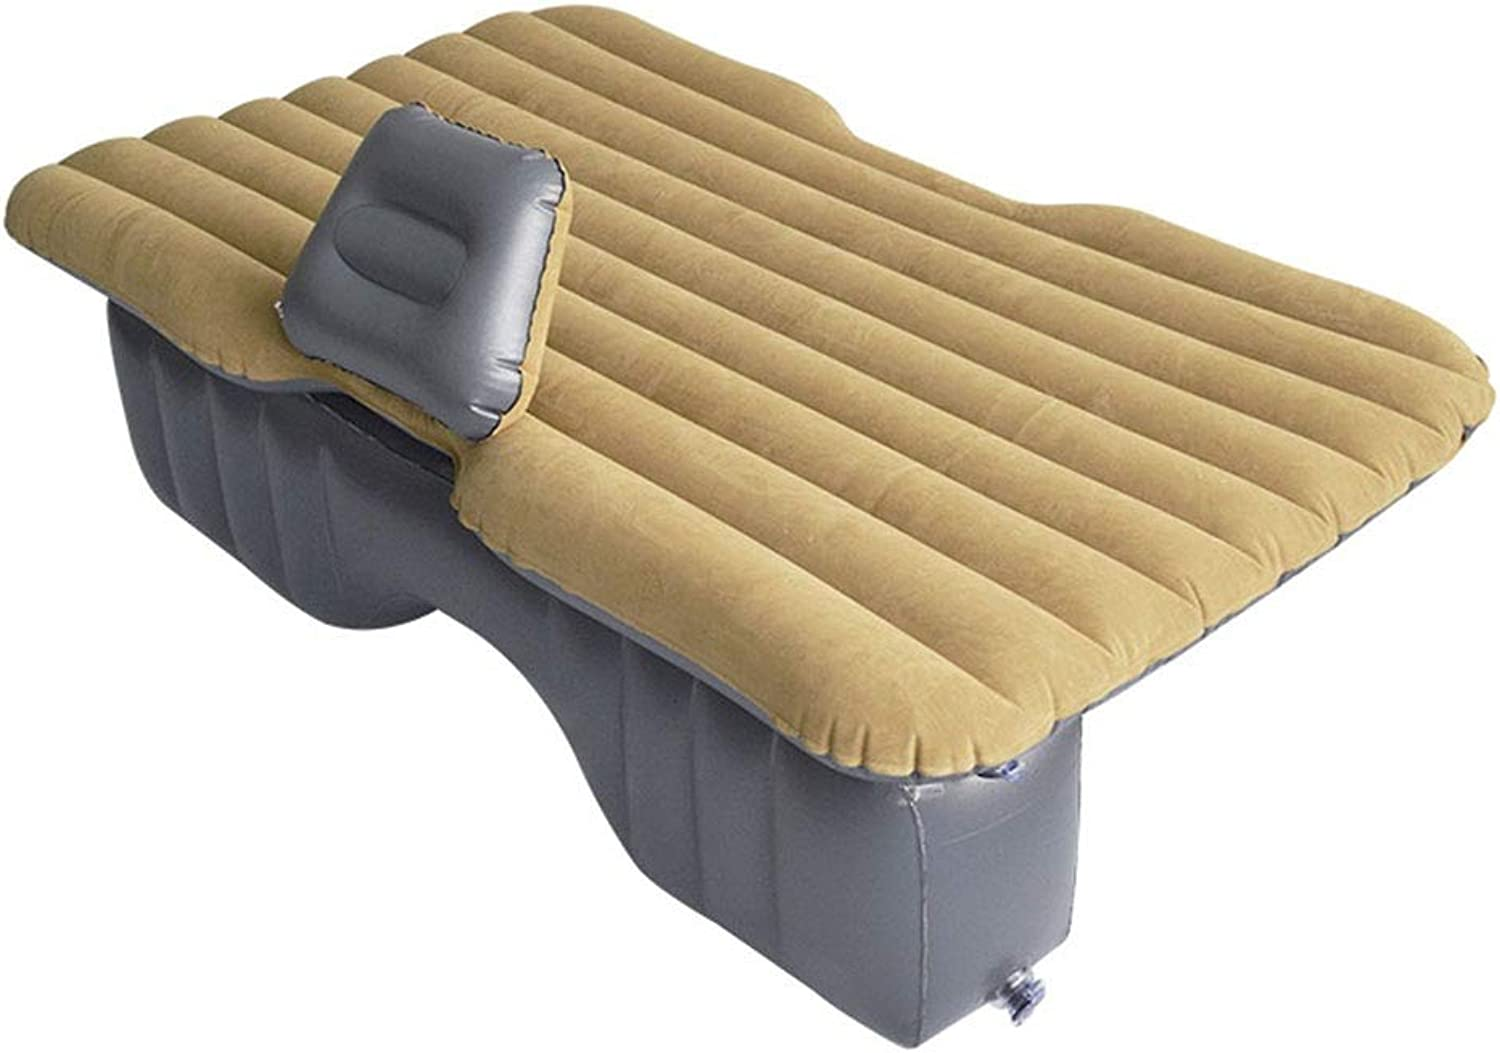 HeavyDuty Backseat Car Inflatable Travel Mattress for Camping Perfect for Your Minivan Or SUV Full Car Camping,Outdoor (color   Khaki, Size   143  87  45CM)